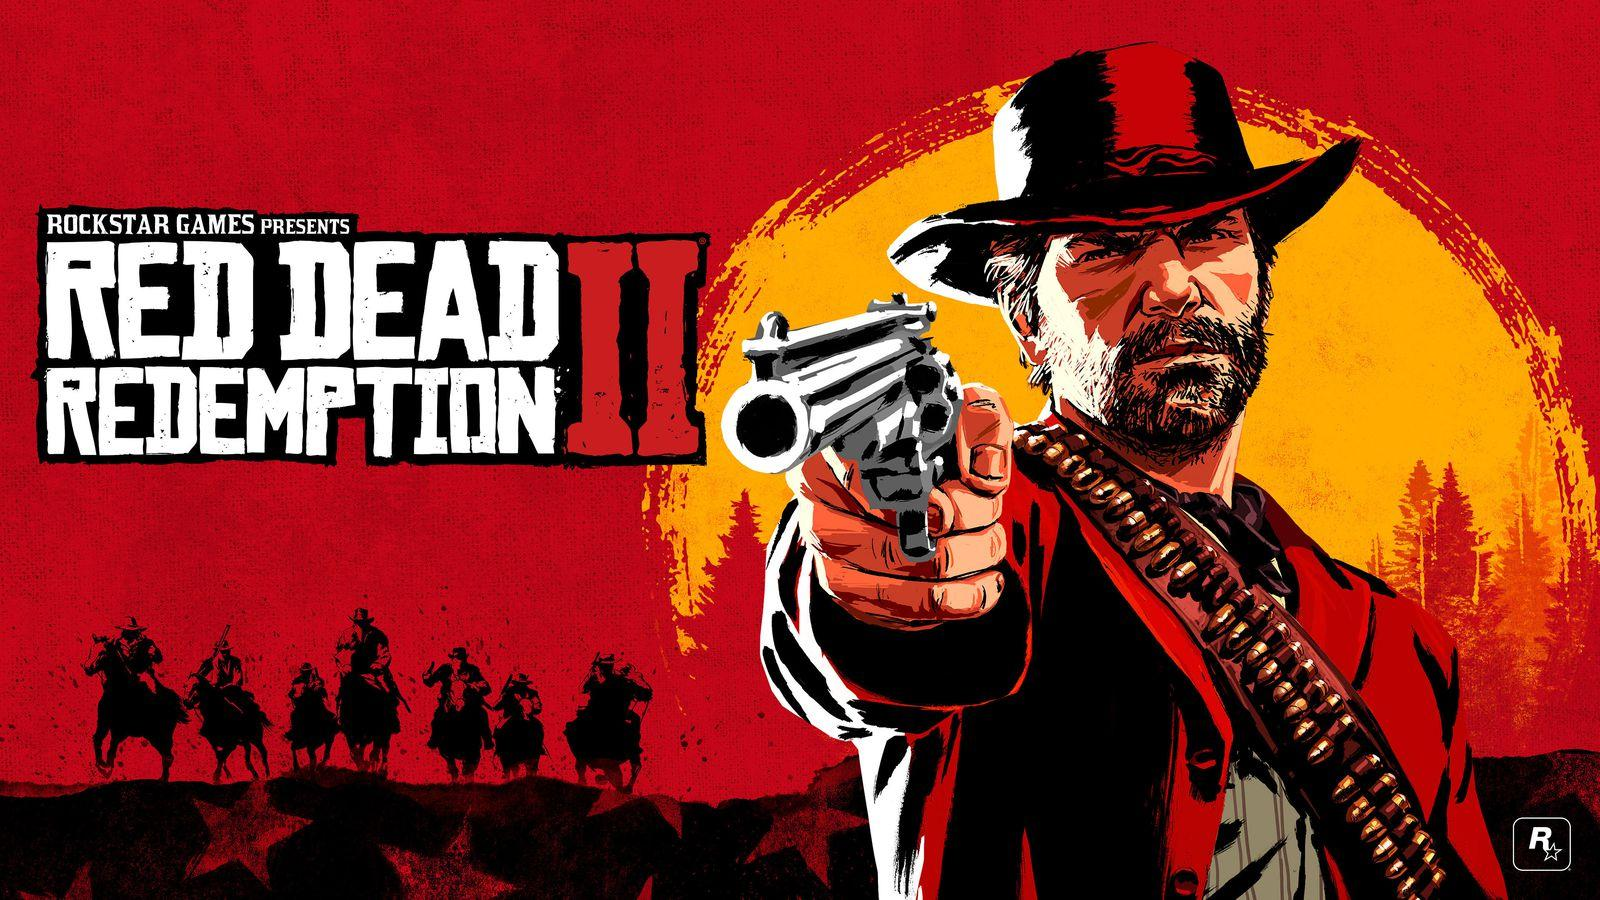 If Red Dead Redemption II has a Battle Royale mode, it could spell the end of Fortnite